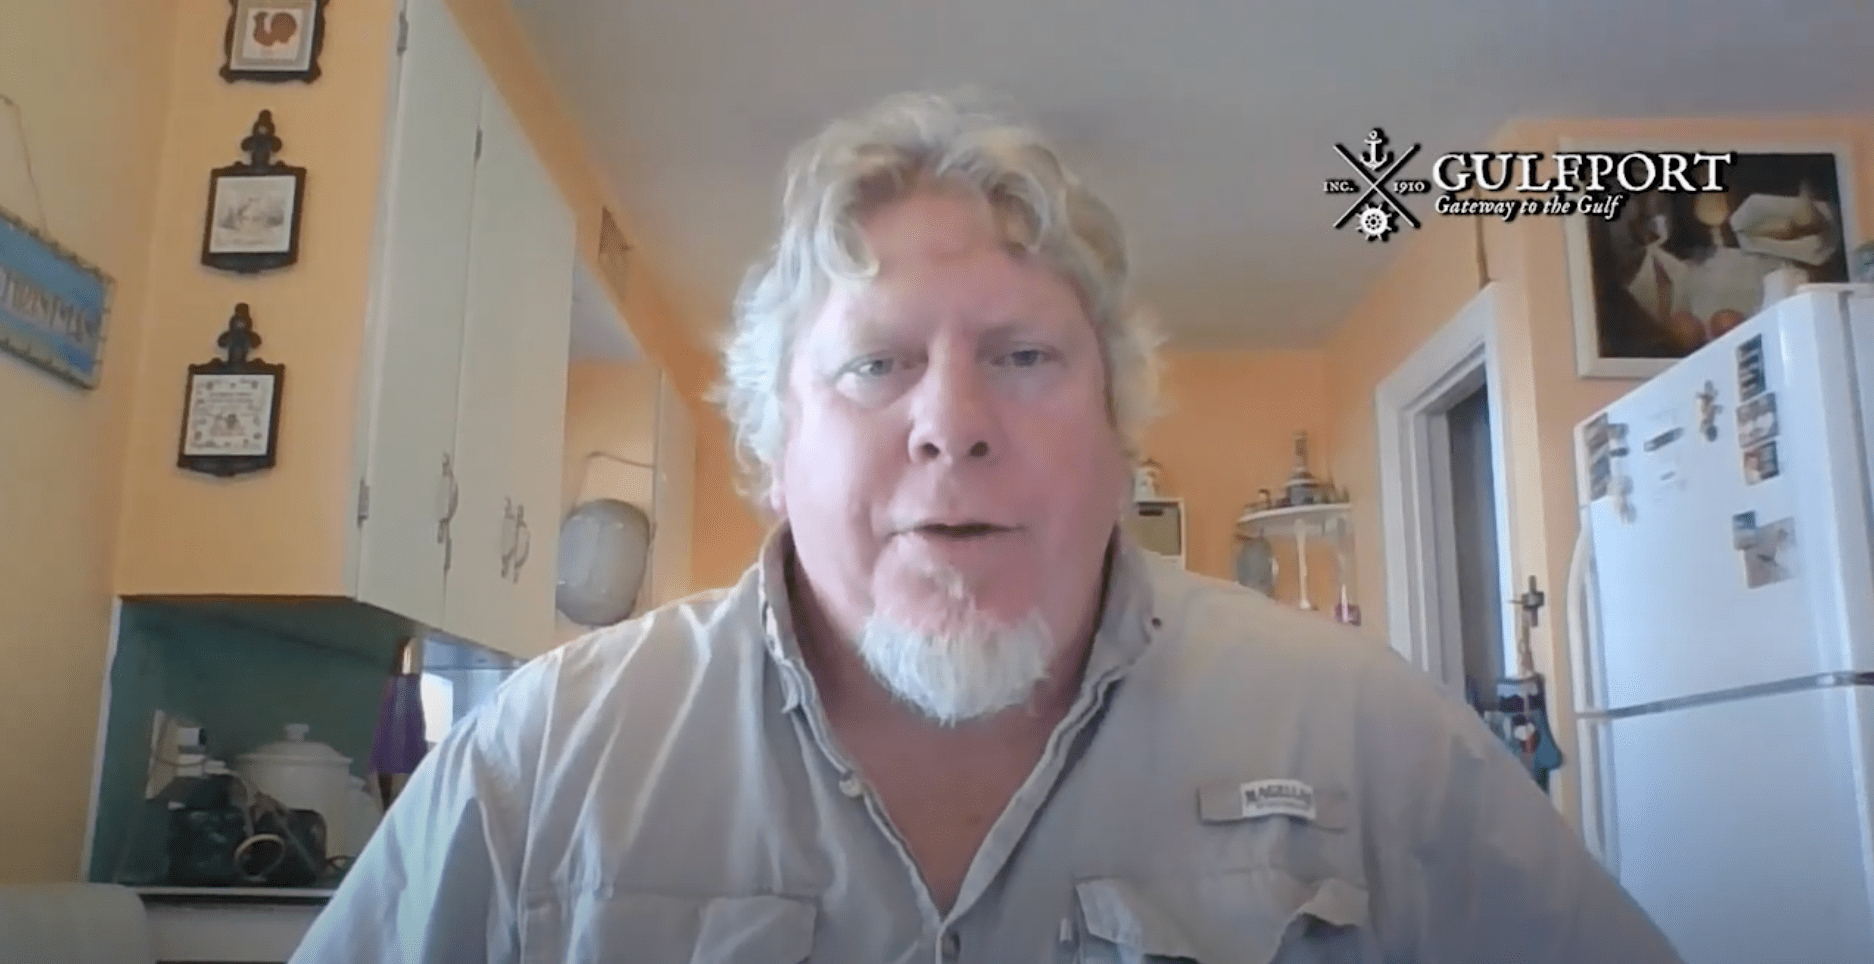 Screen cap of a man in a kitchen with a logo on the top right for Gulfport Florida